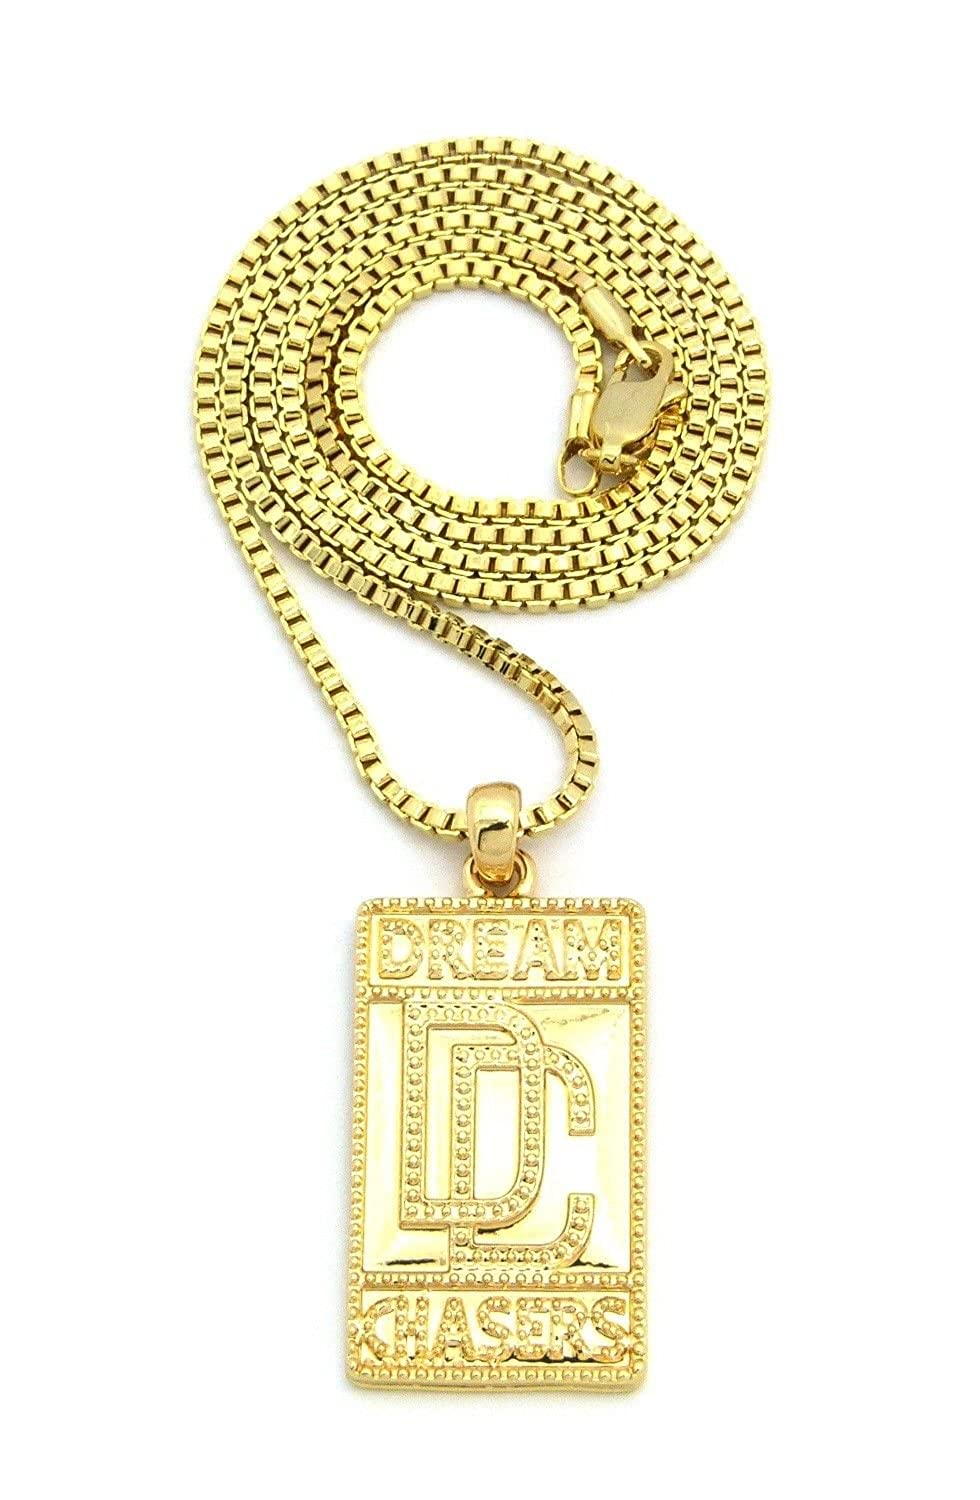 New dream chasers dc pendant 2mm24 box chain hip hop necklace new dream chasers dc pendant 2mm24 box chain hip hop necklace xmp5bxg amazon aloadofball Images